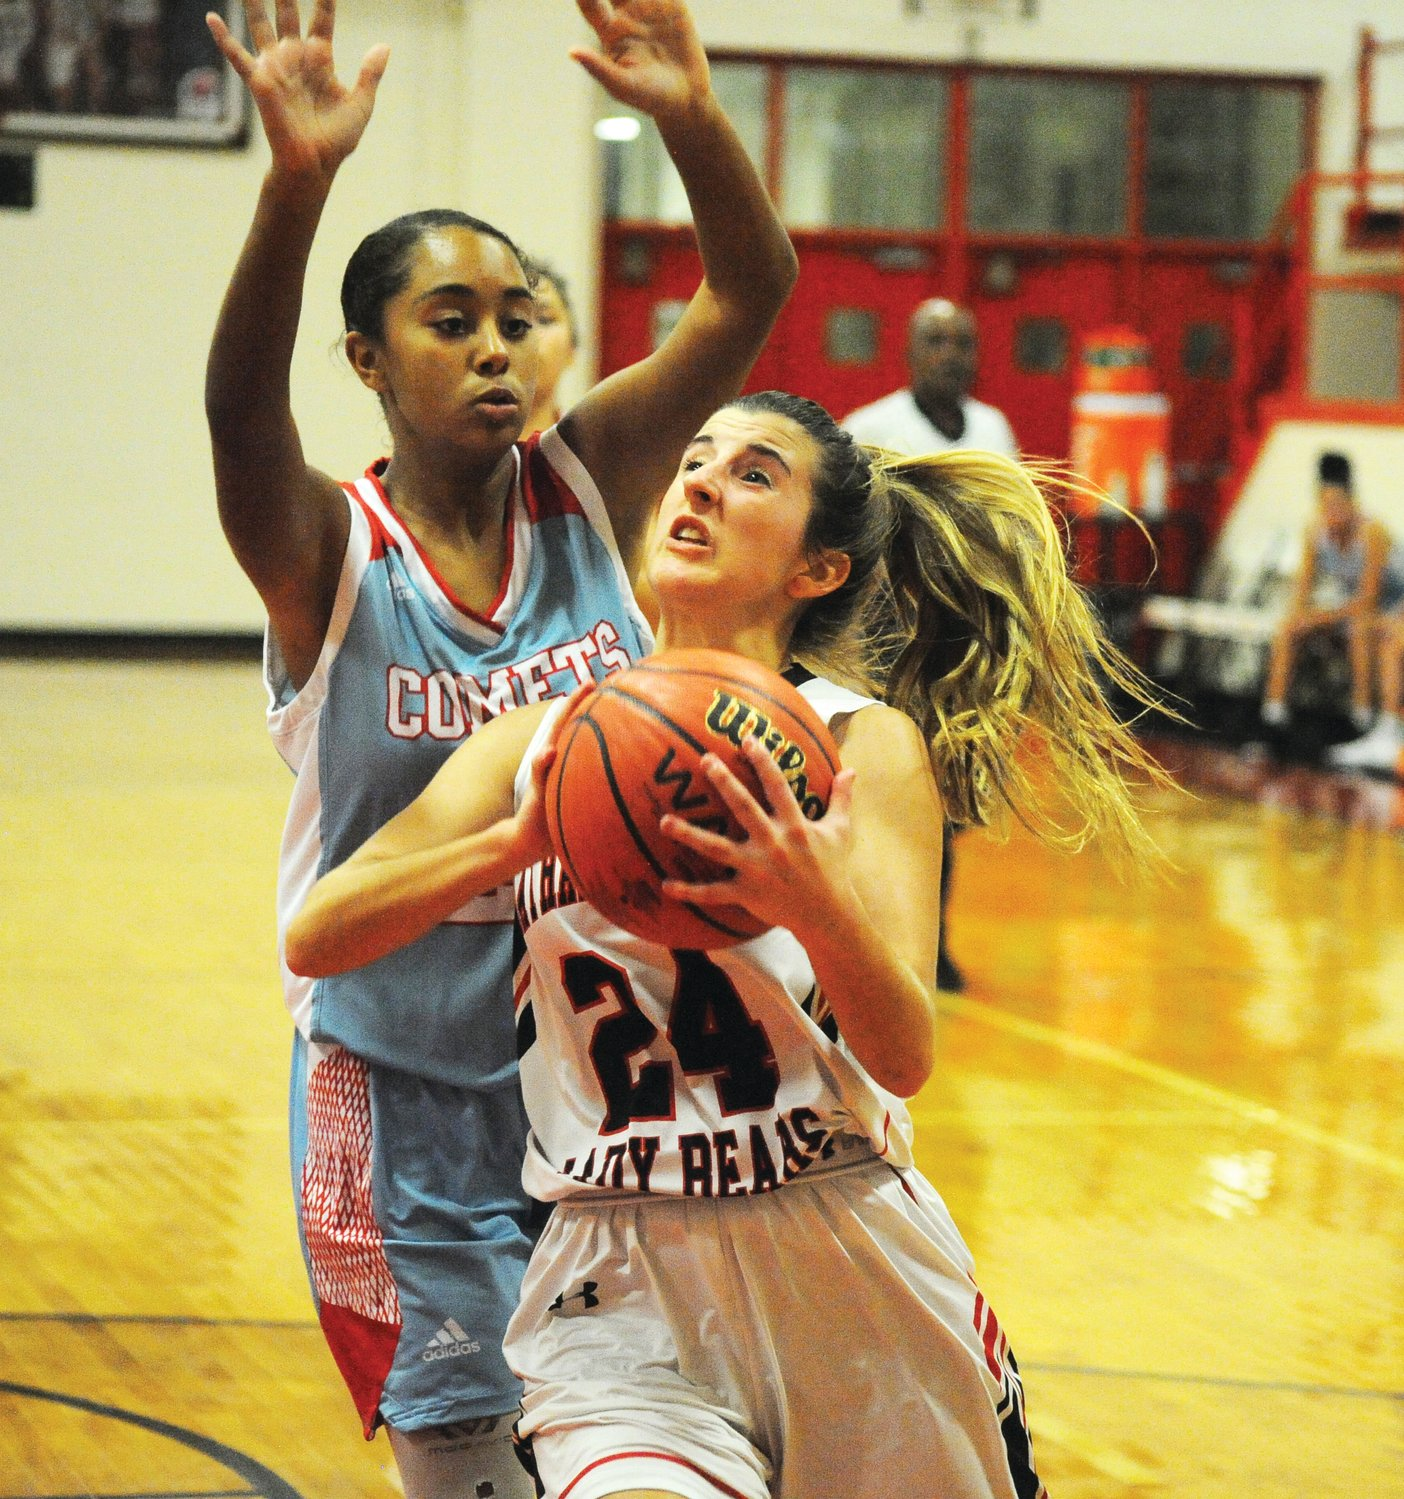 North Stanly's Nyleiah White is passed by Chatham Central's Mary-Grace Murchison in conference match last Friday in Bear Creek. The contest was no match for the Bears as they trounced the Comets, 56-26.